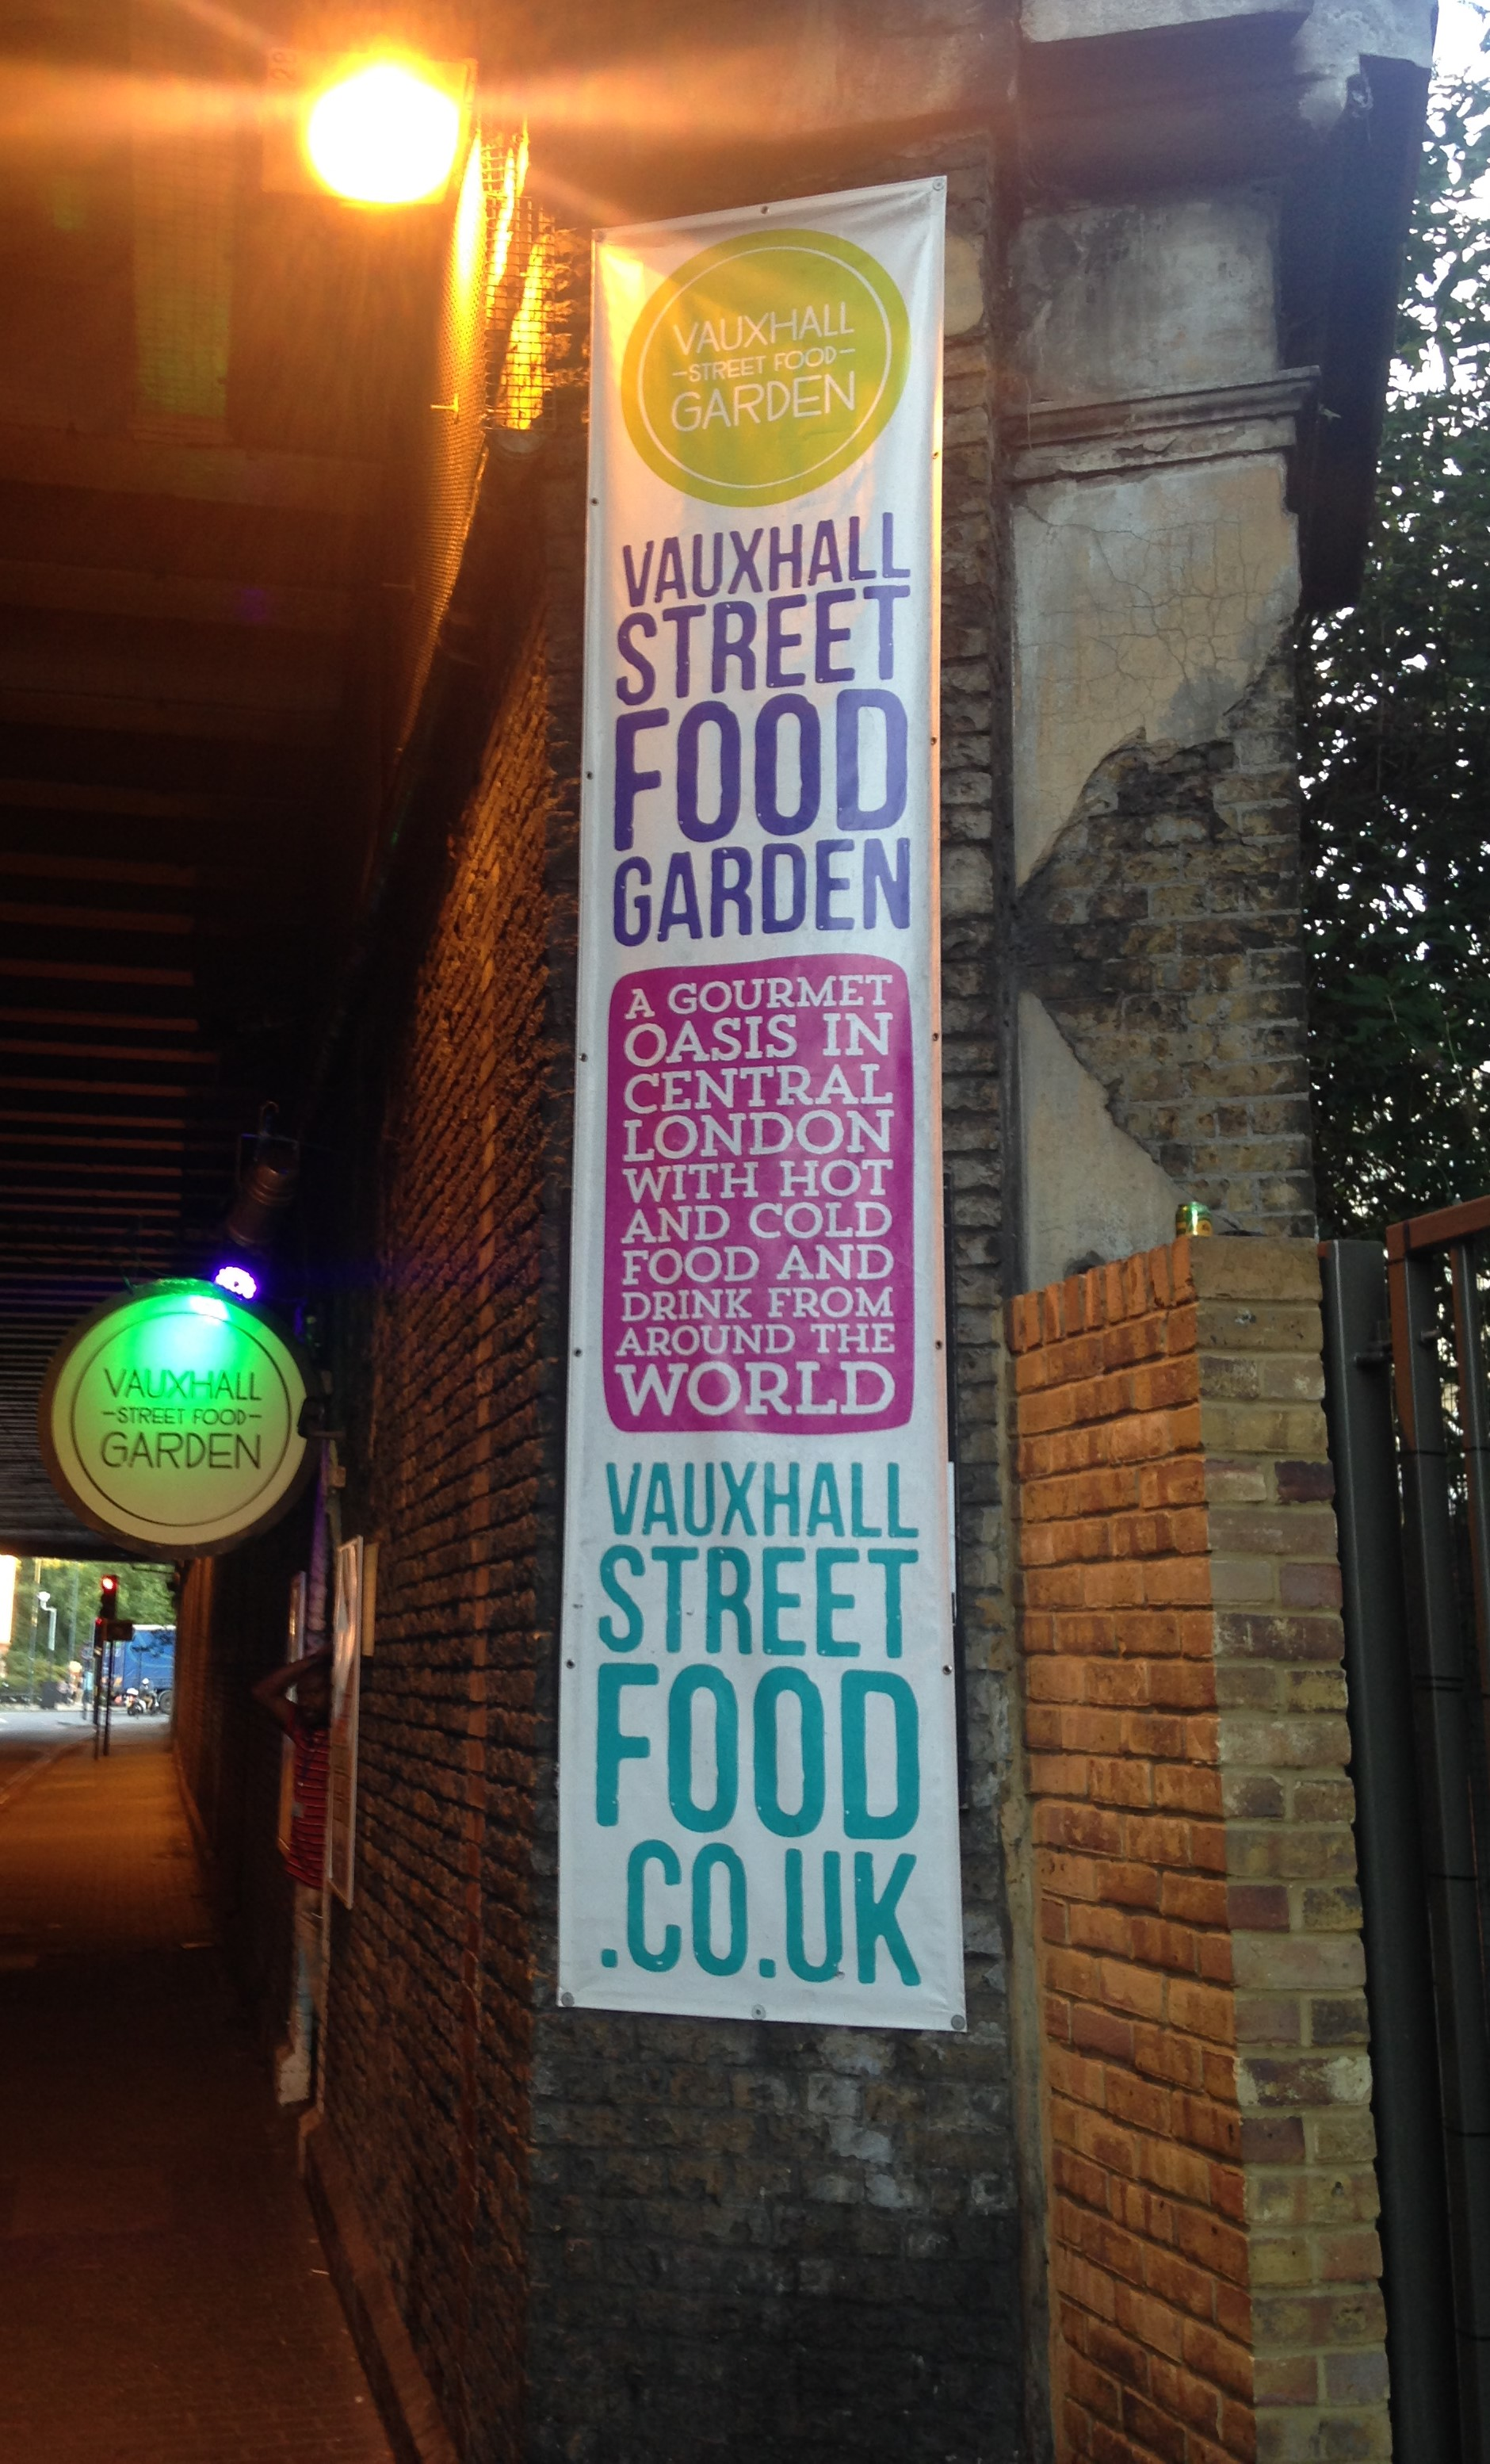 Vauxhall Street Food Garden entrance - kenningtonrunoff.com